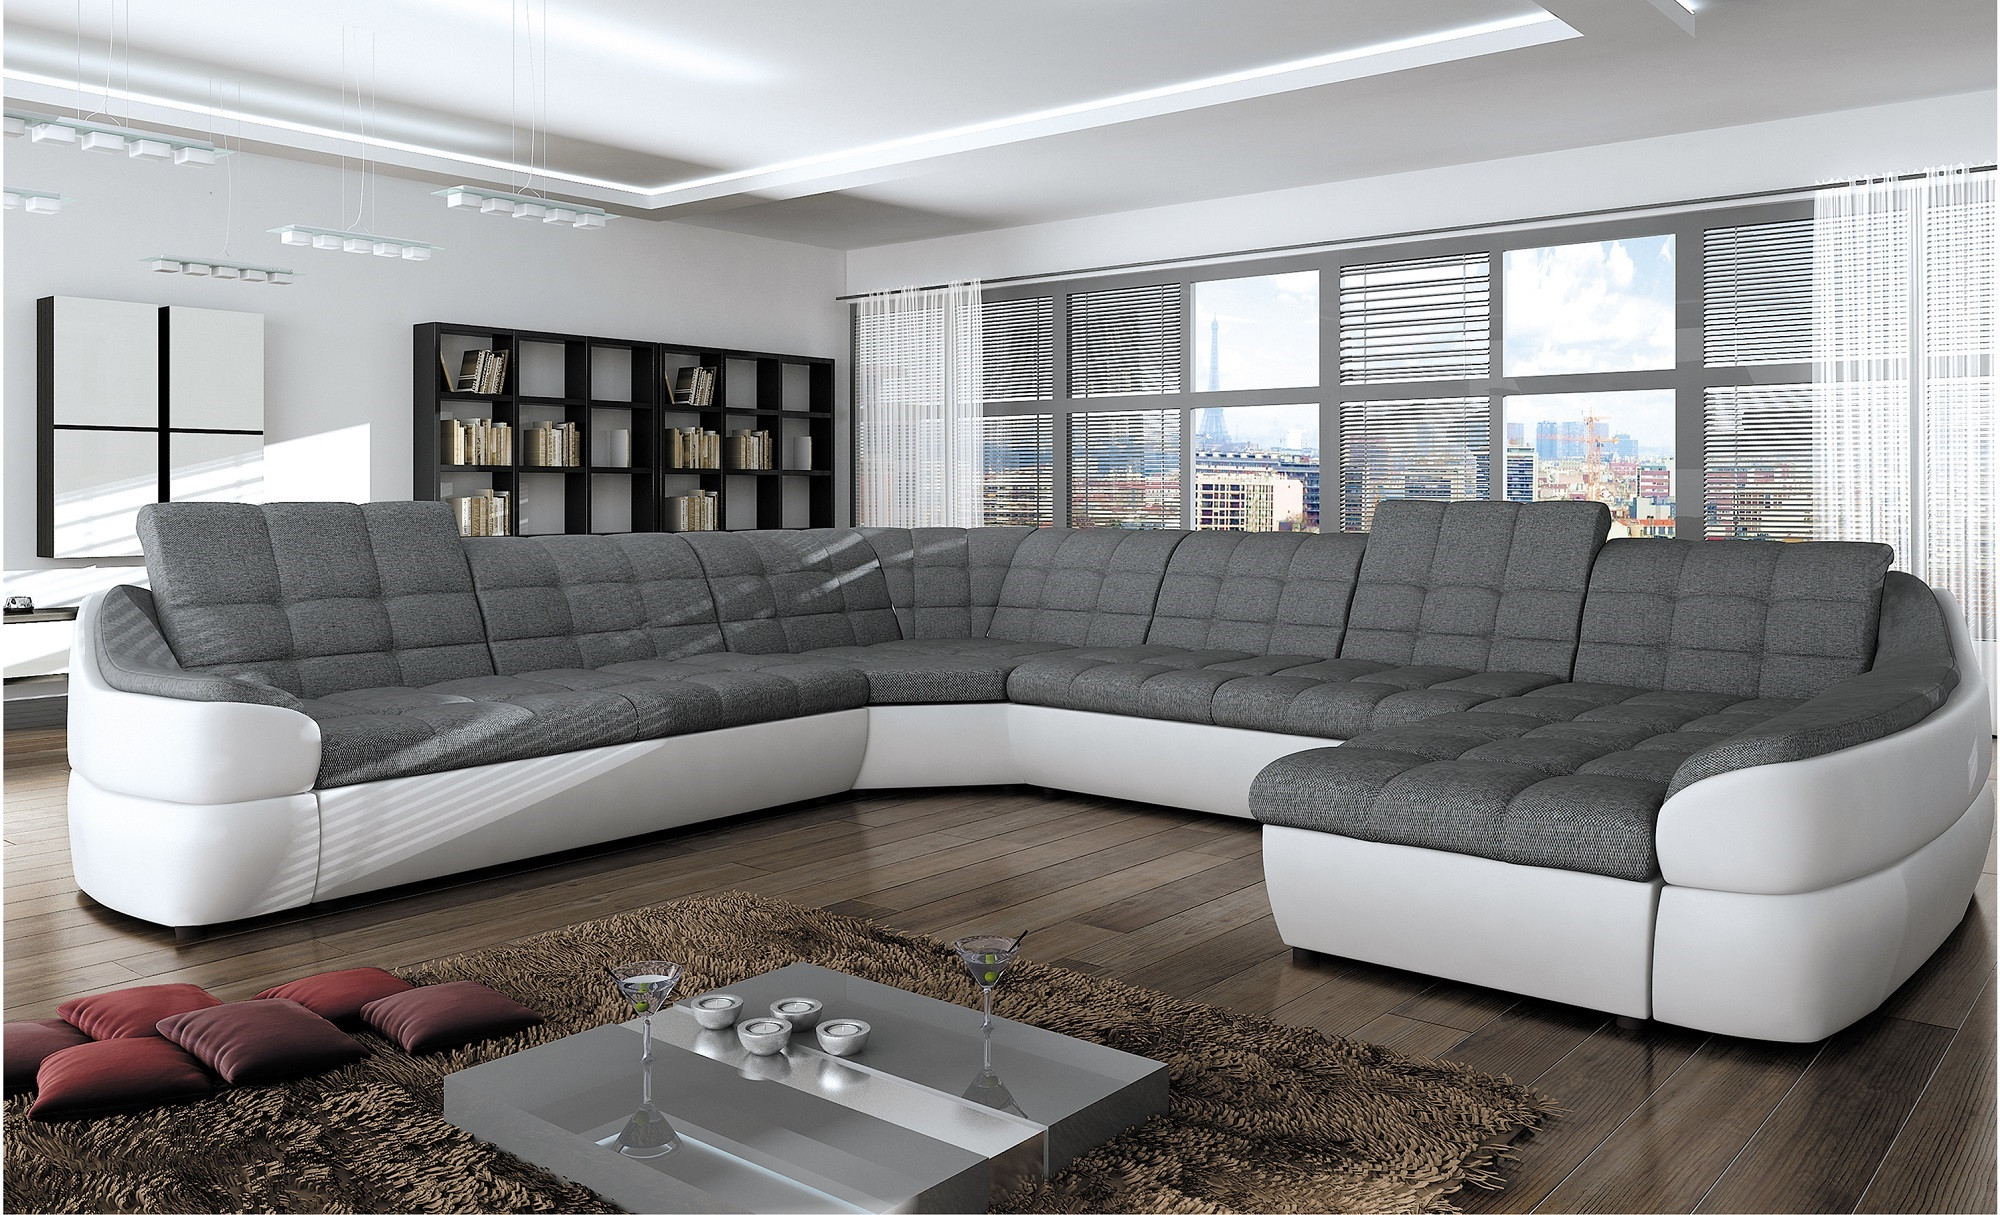 BMF INFINITY XL WHITE GREY 6-SEATER FAUX LEATHER/FABRIC CORNER SOFA BED  COMF RF | eBay